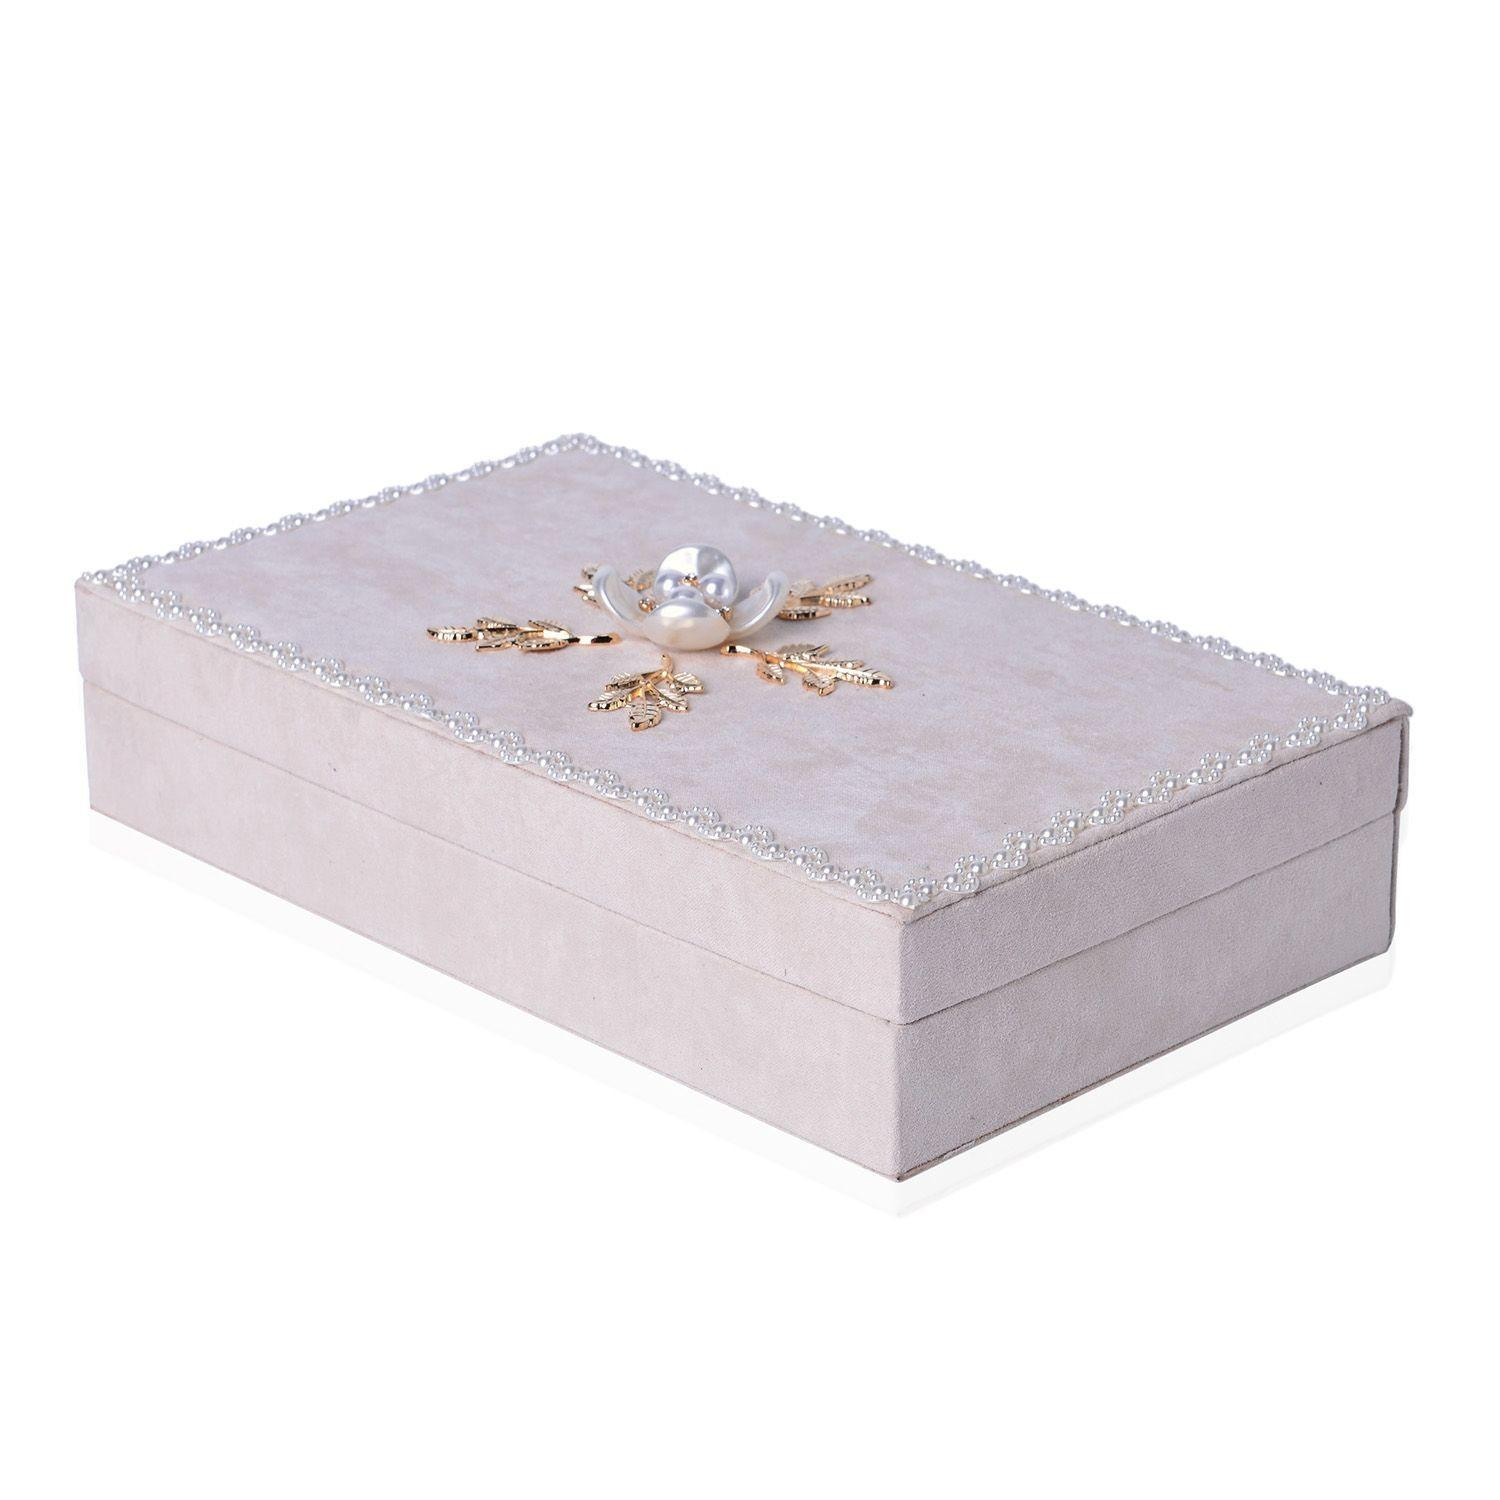 Handcrafted White Velvet Classic Flower Jewelry Box